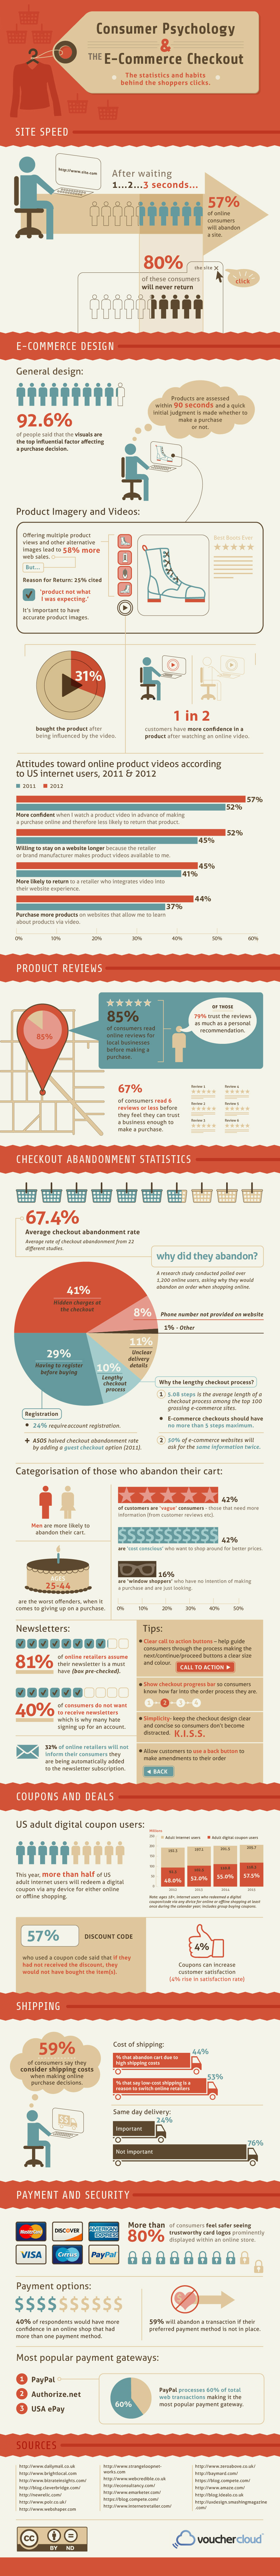 Consumer-Psychology-and-ECommerce-Checkouts-Infographic-SML